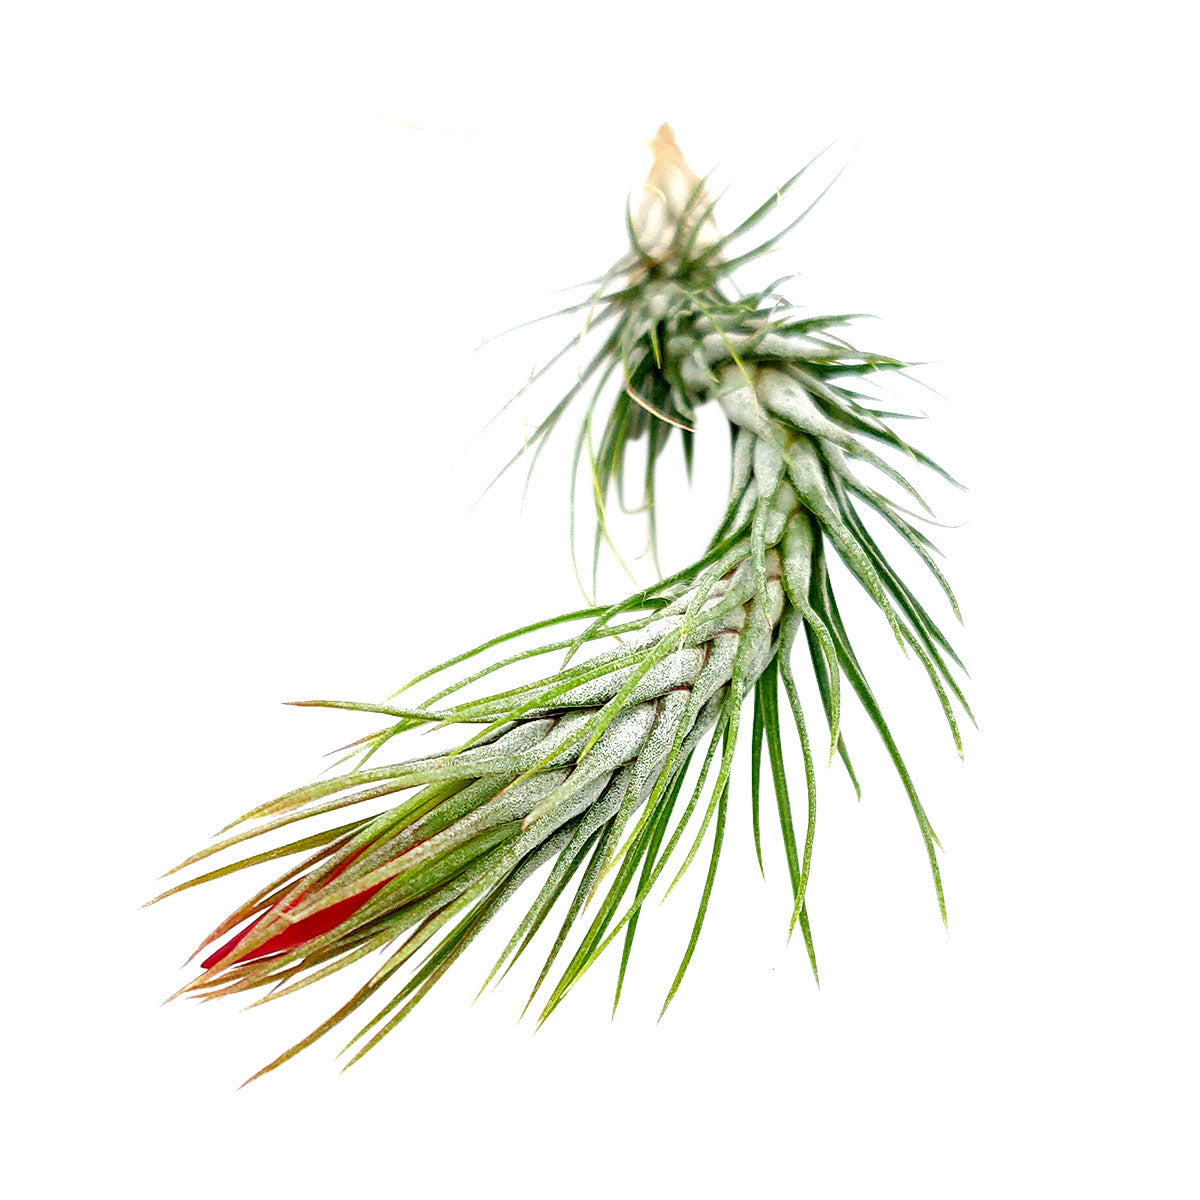 Tillandsia Funckiana air plant for sale, How to care for Tillandsia Funckiana air plant, air plant gift decor ideas, Growing Tillandsia Funckiana air plant, rare air plant